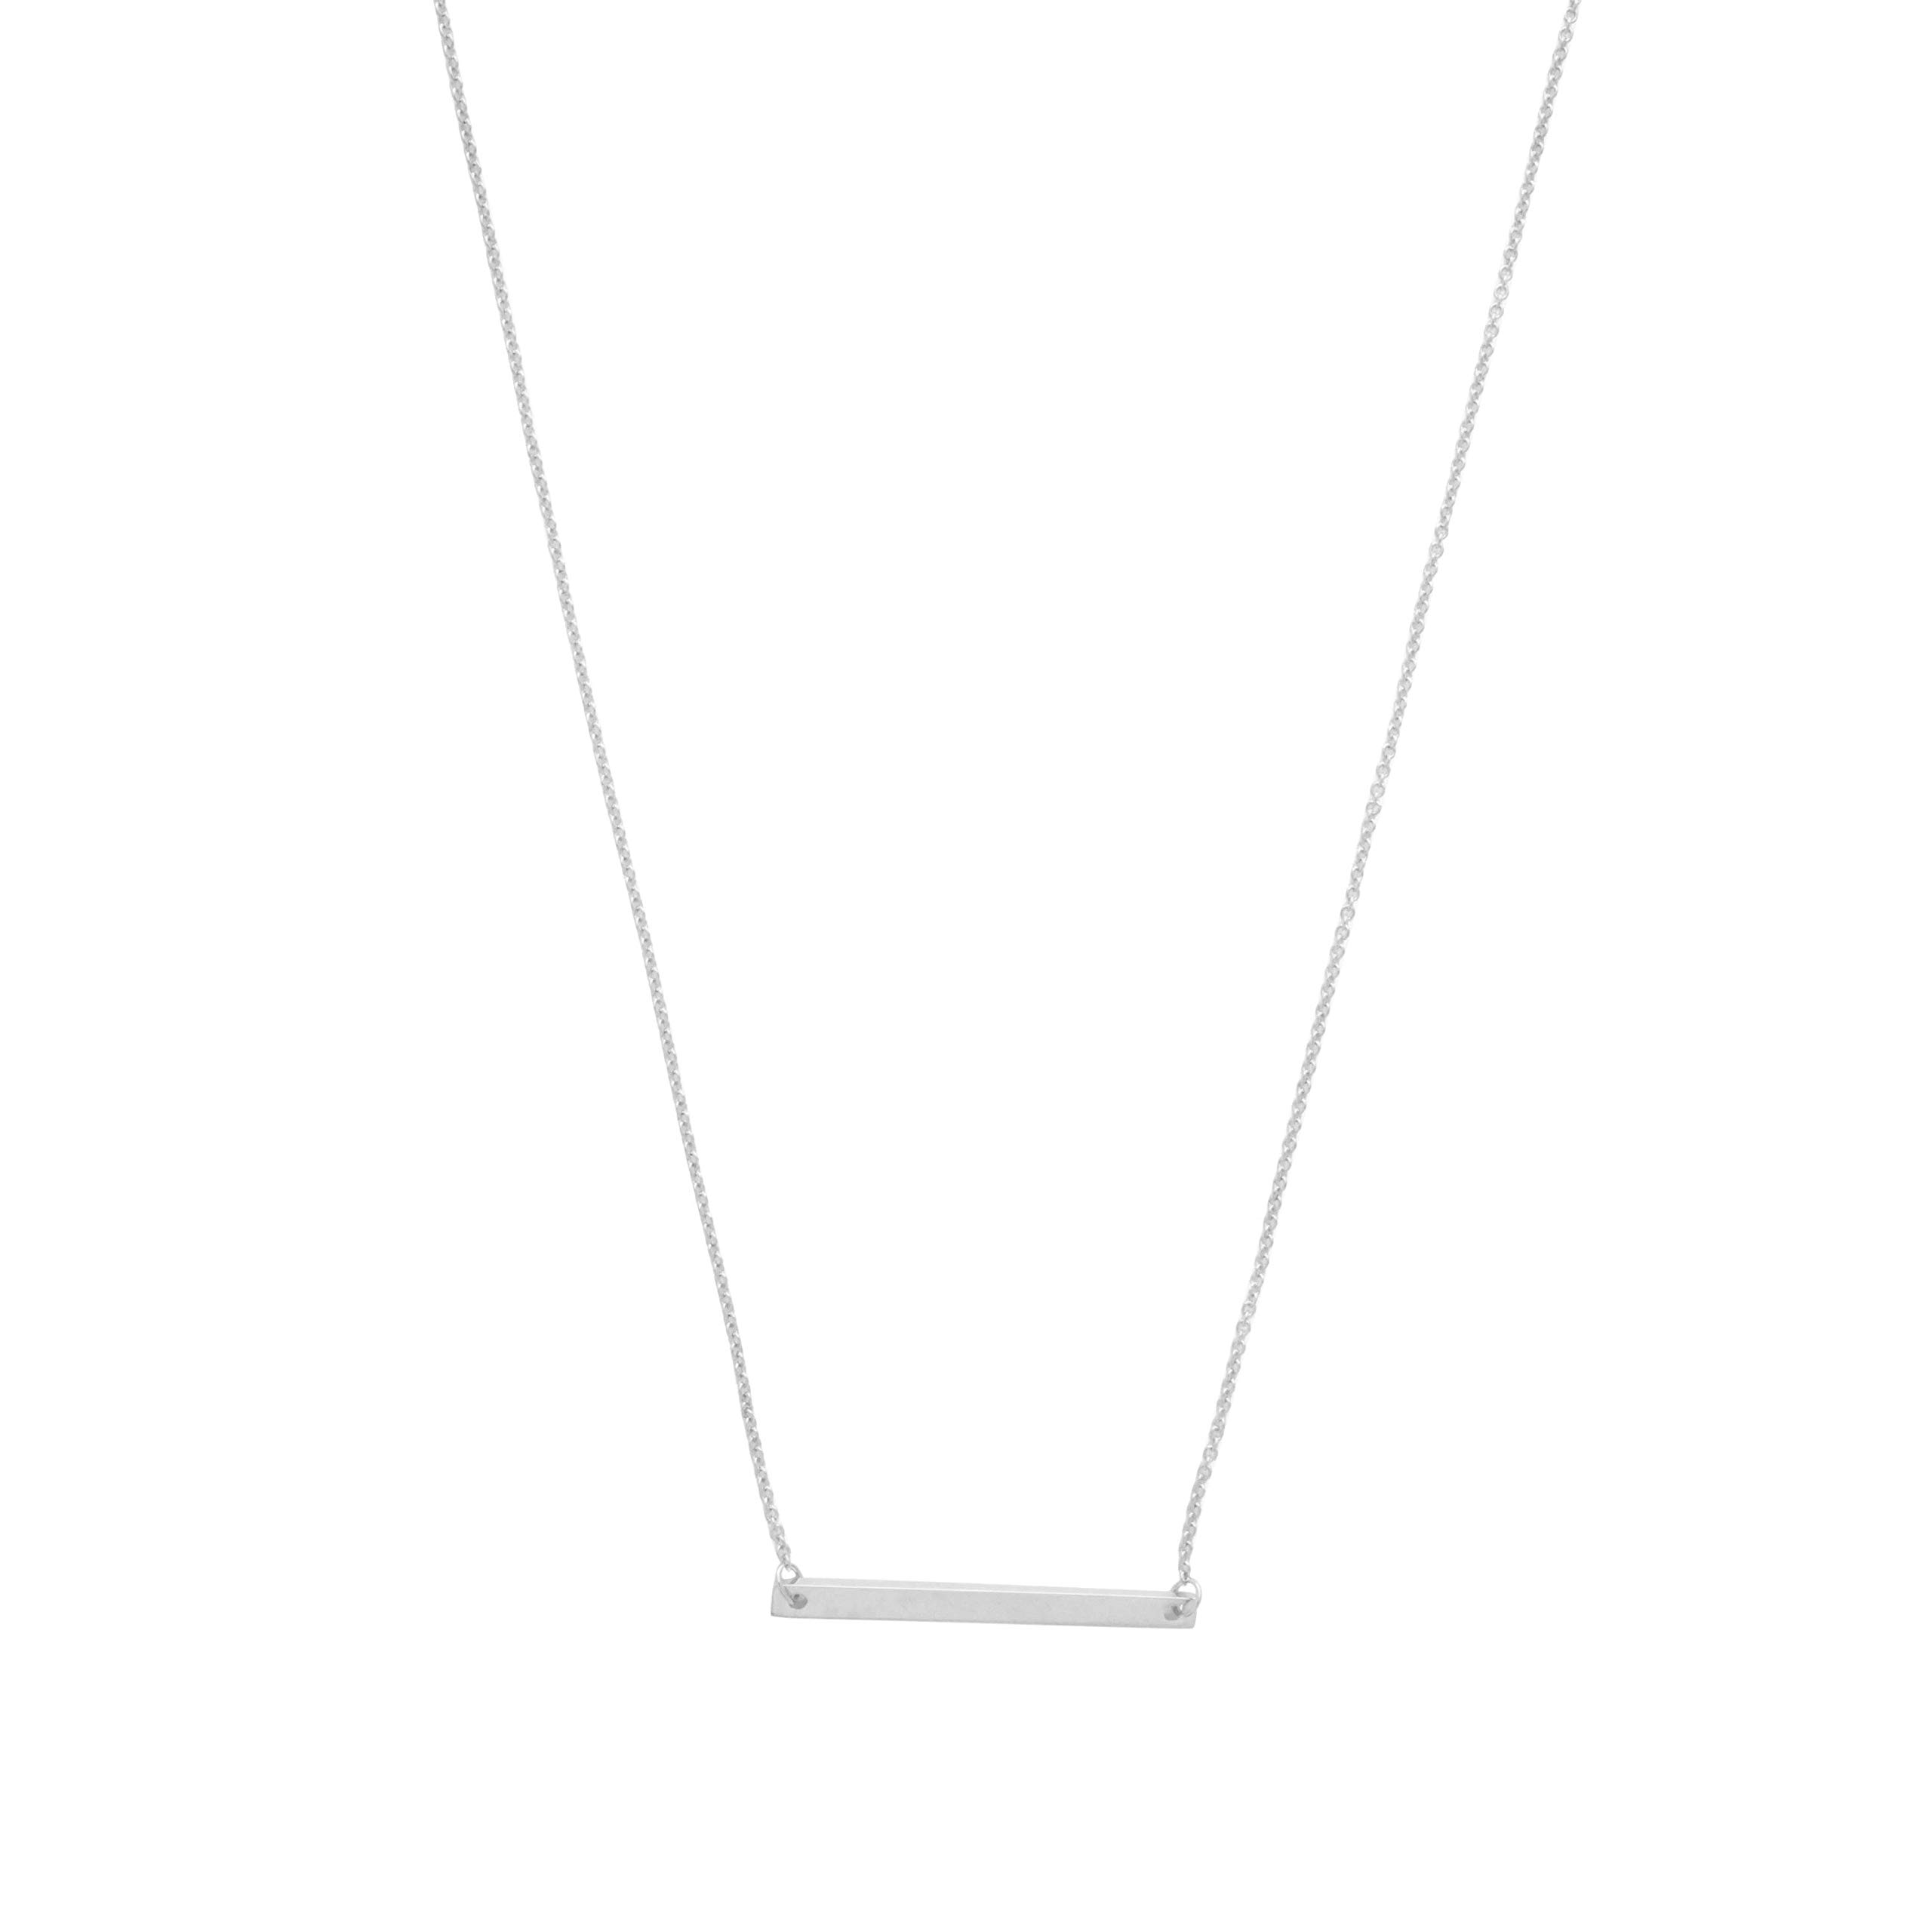 HONEYCAT 24k Gold Plated, 18k Rose Gold Plated, or Silver Classic Horizontal Bar Necklace | Minimalist, Delicate Jewelry (Silver) by HONEYCAT (Image #8)